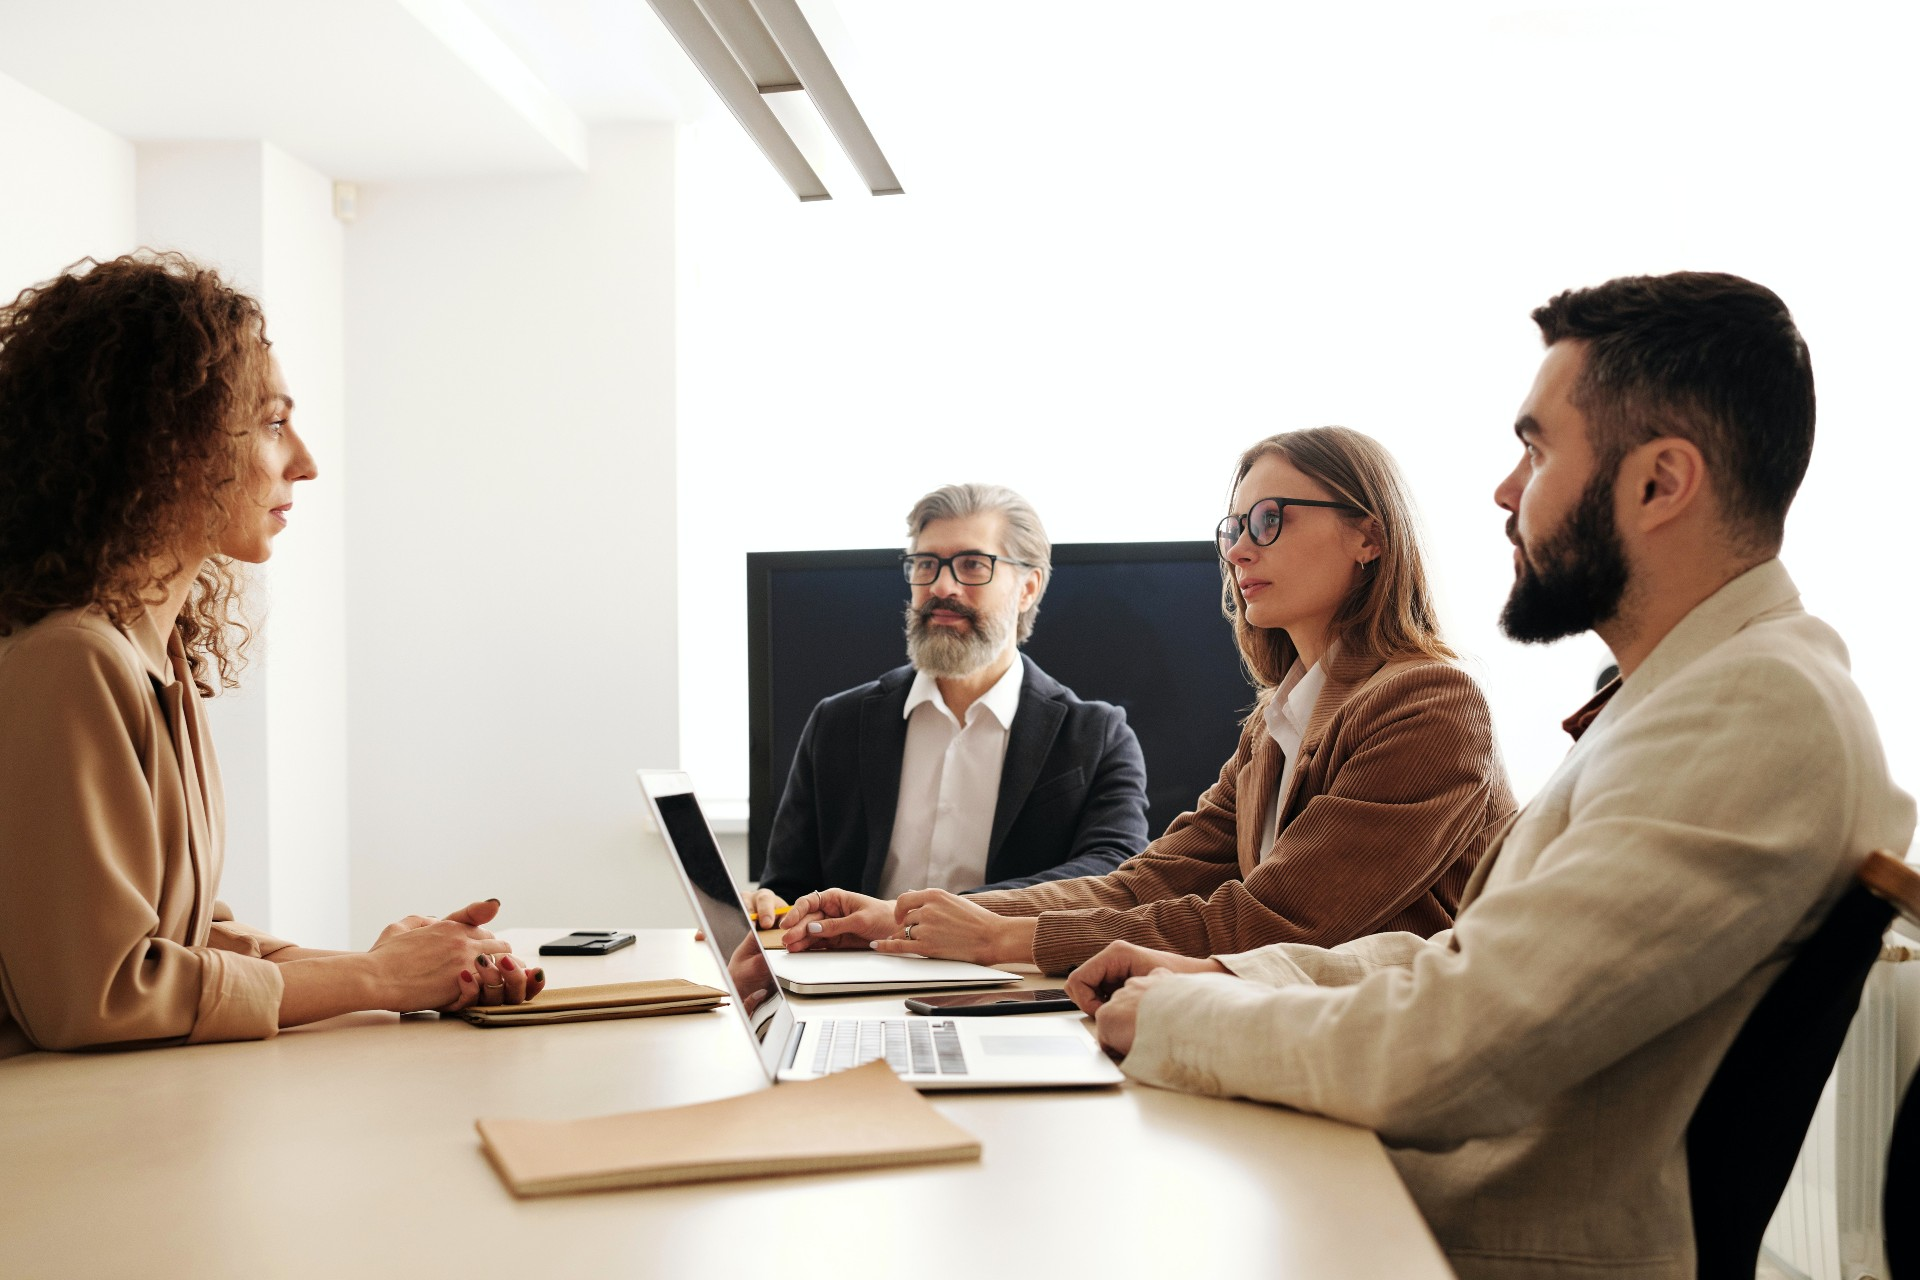 Hiring practices have a far-reaching impact on the longterm health of any organization. These five tips will help keep your company on track.